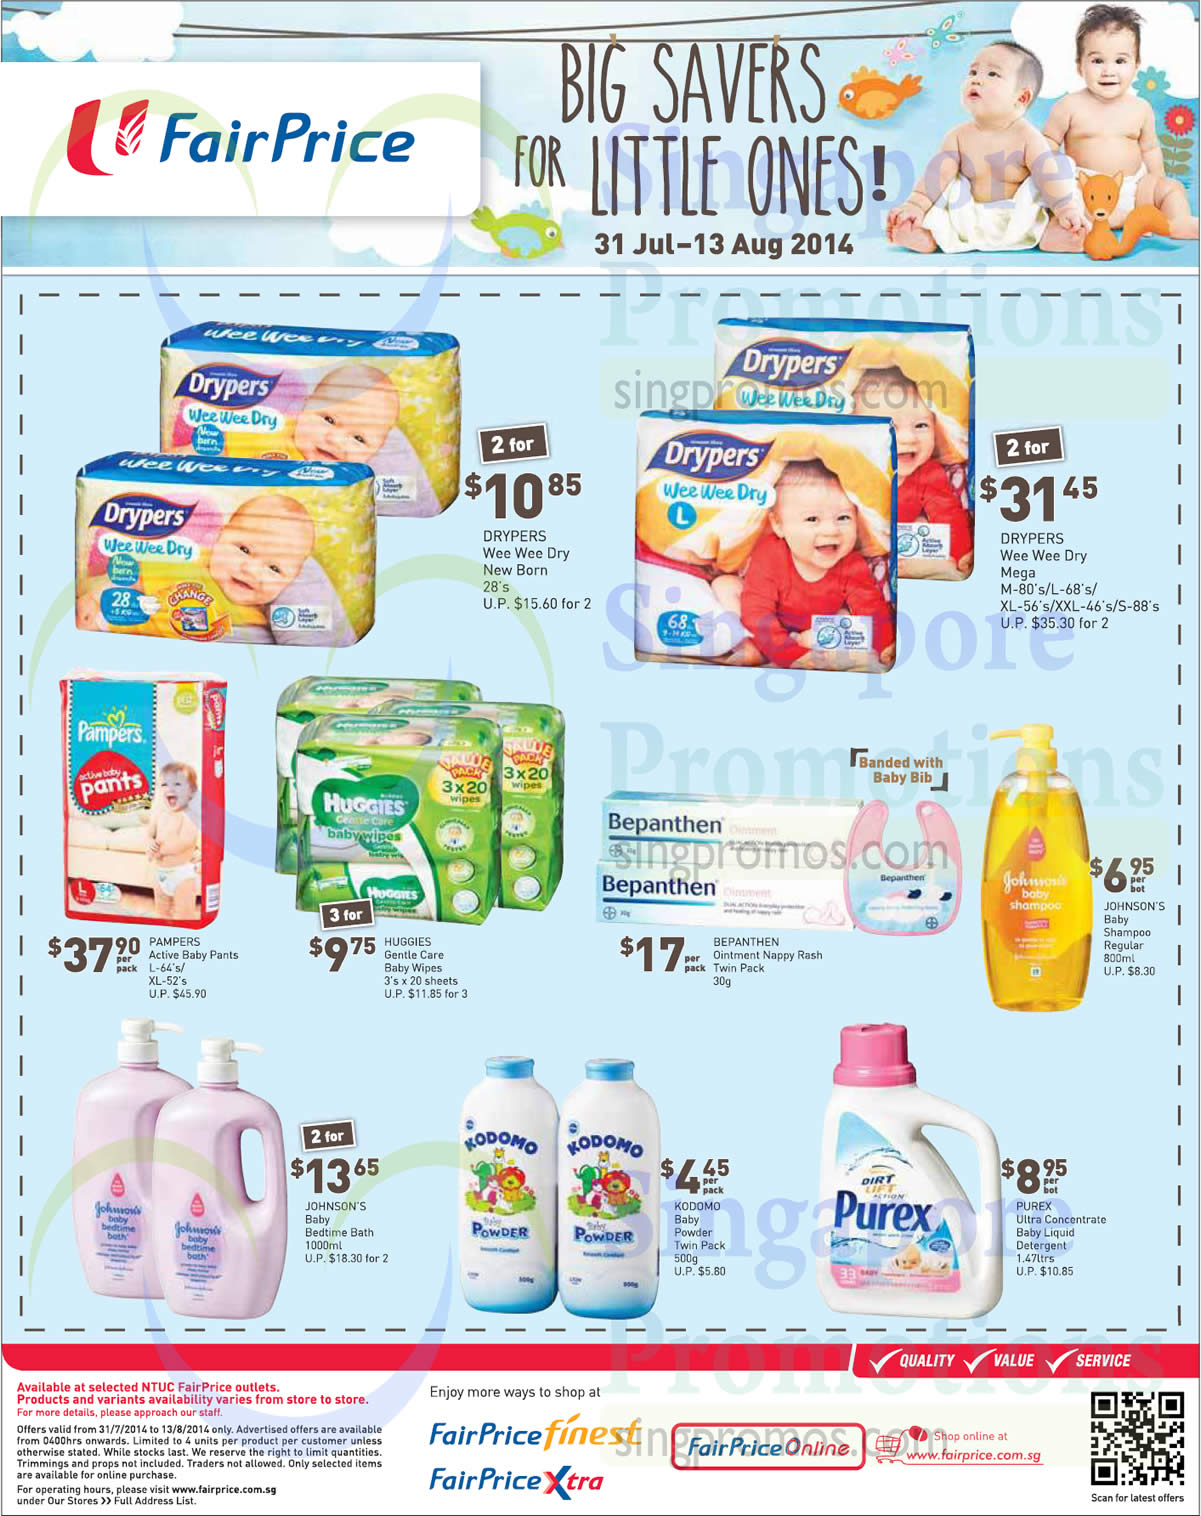 Baby Diapers, Wipes, Baby Pants, Ointment, Shampoo, Bath Soap, Baby Powder, Detergent